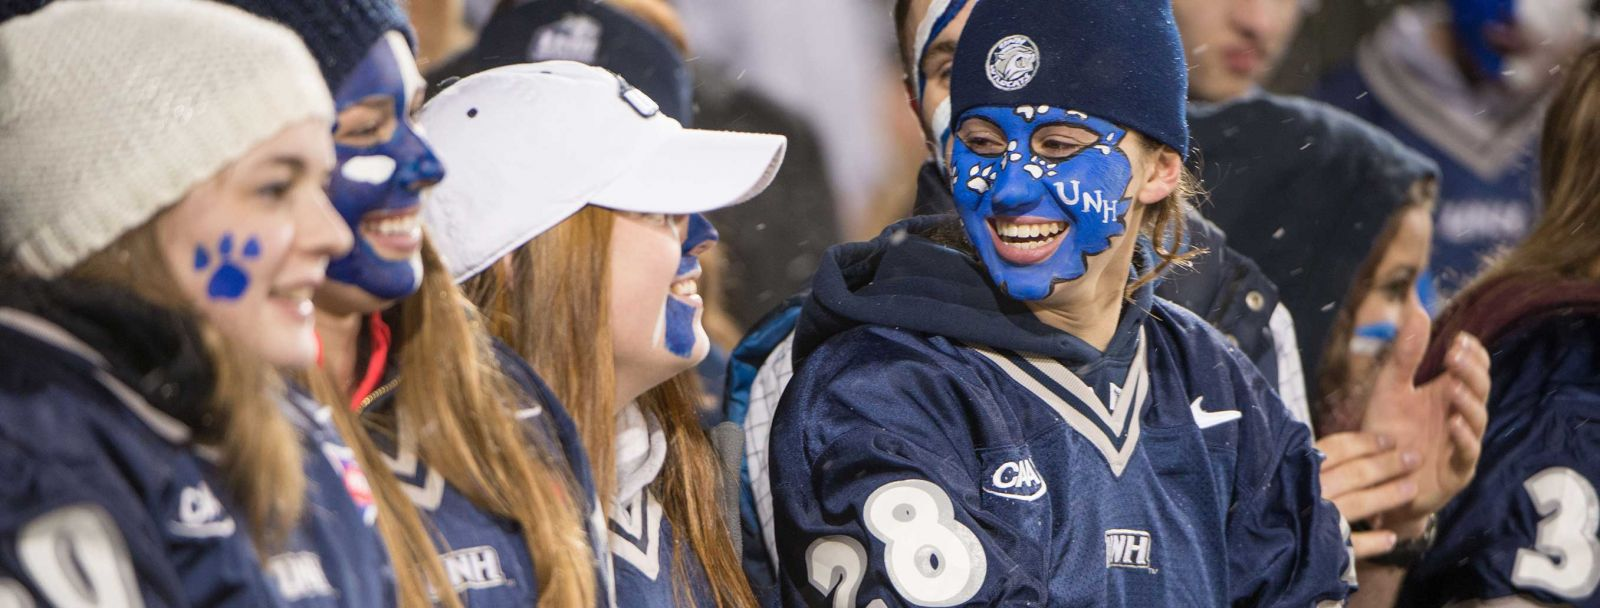 UNH students cheer on their #1 ranked Wildcat football team, fall 2014